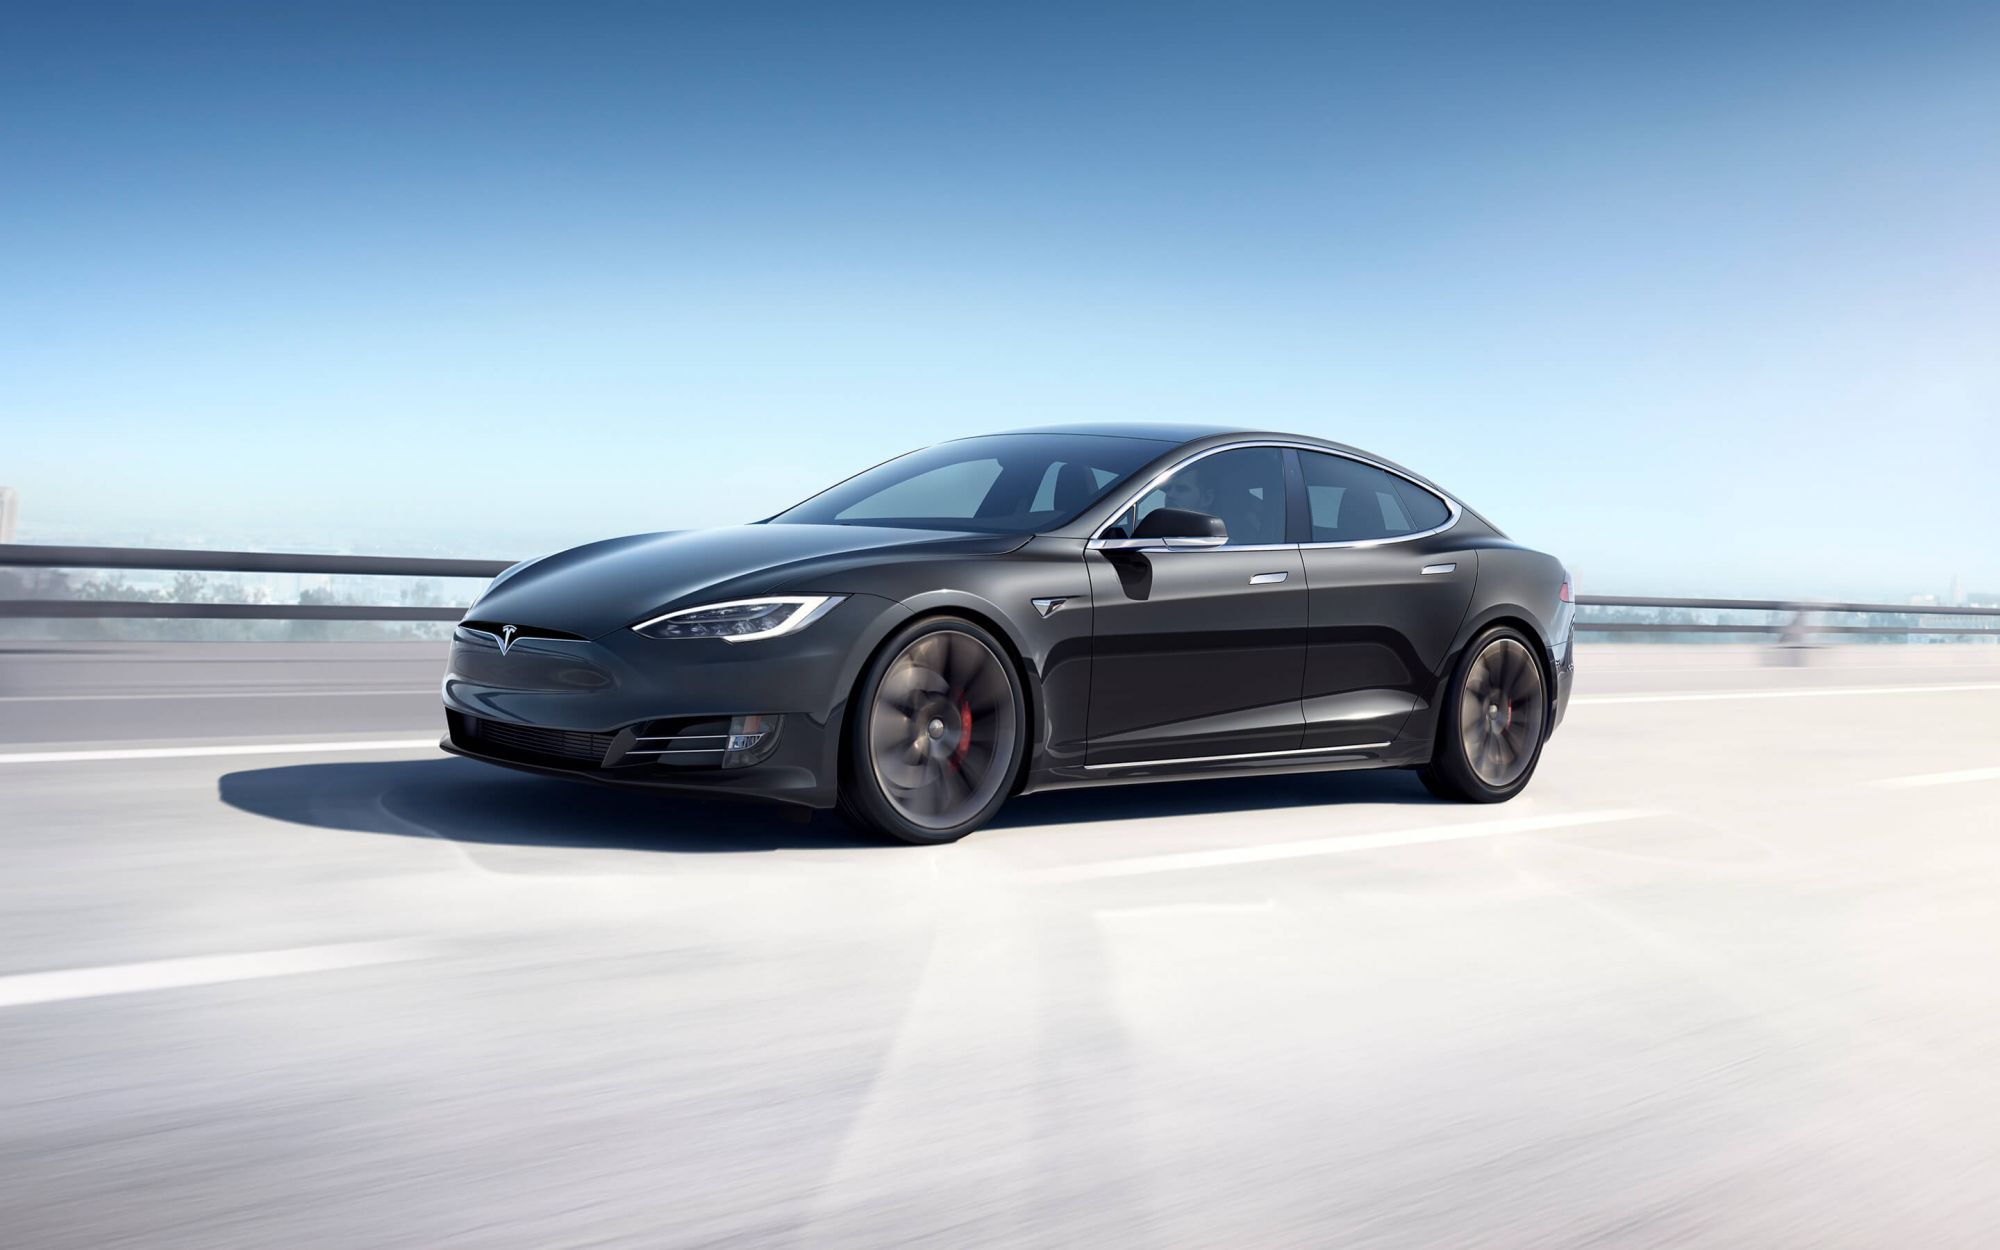 The Tesla Model S Is The First Electric Vehicle With A 647-Kilometre Range